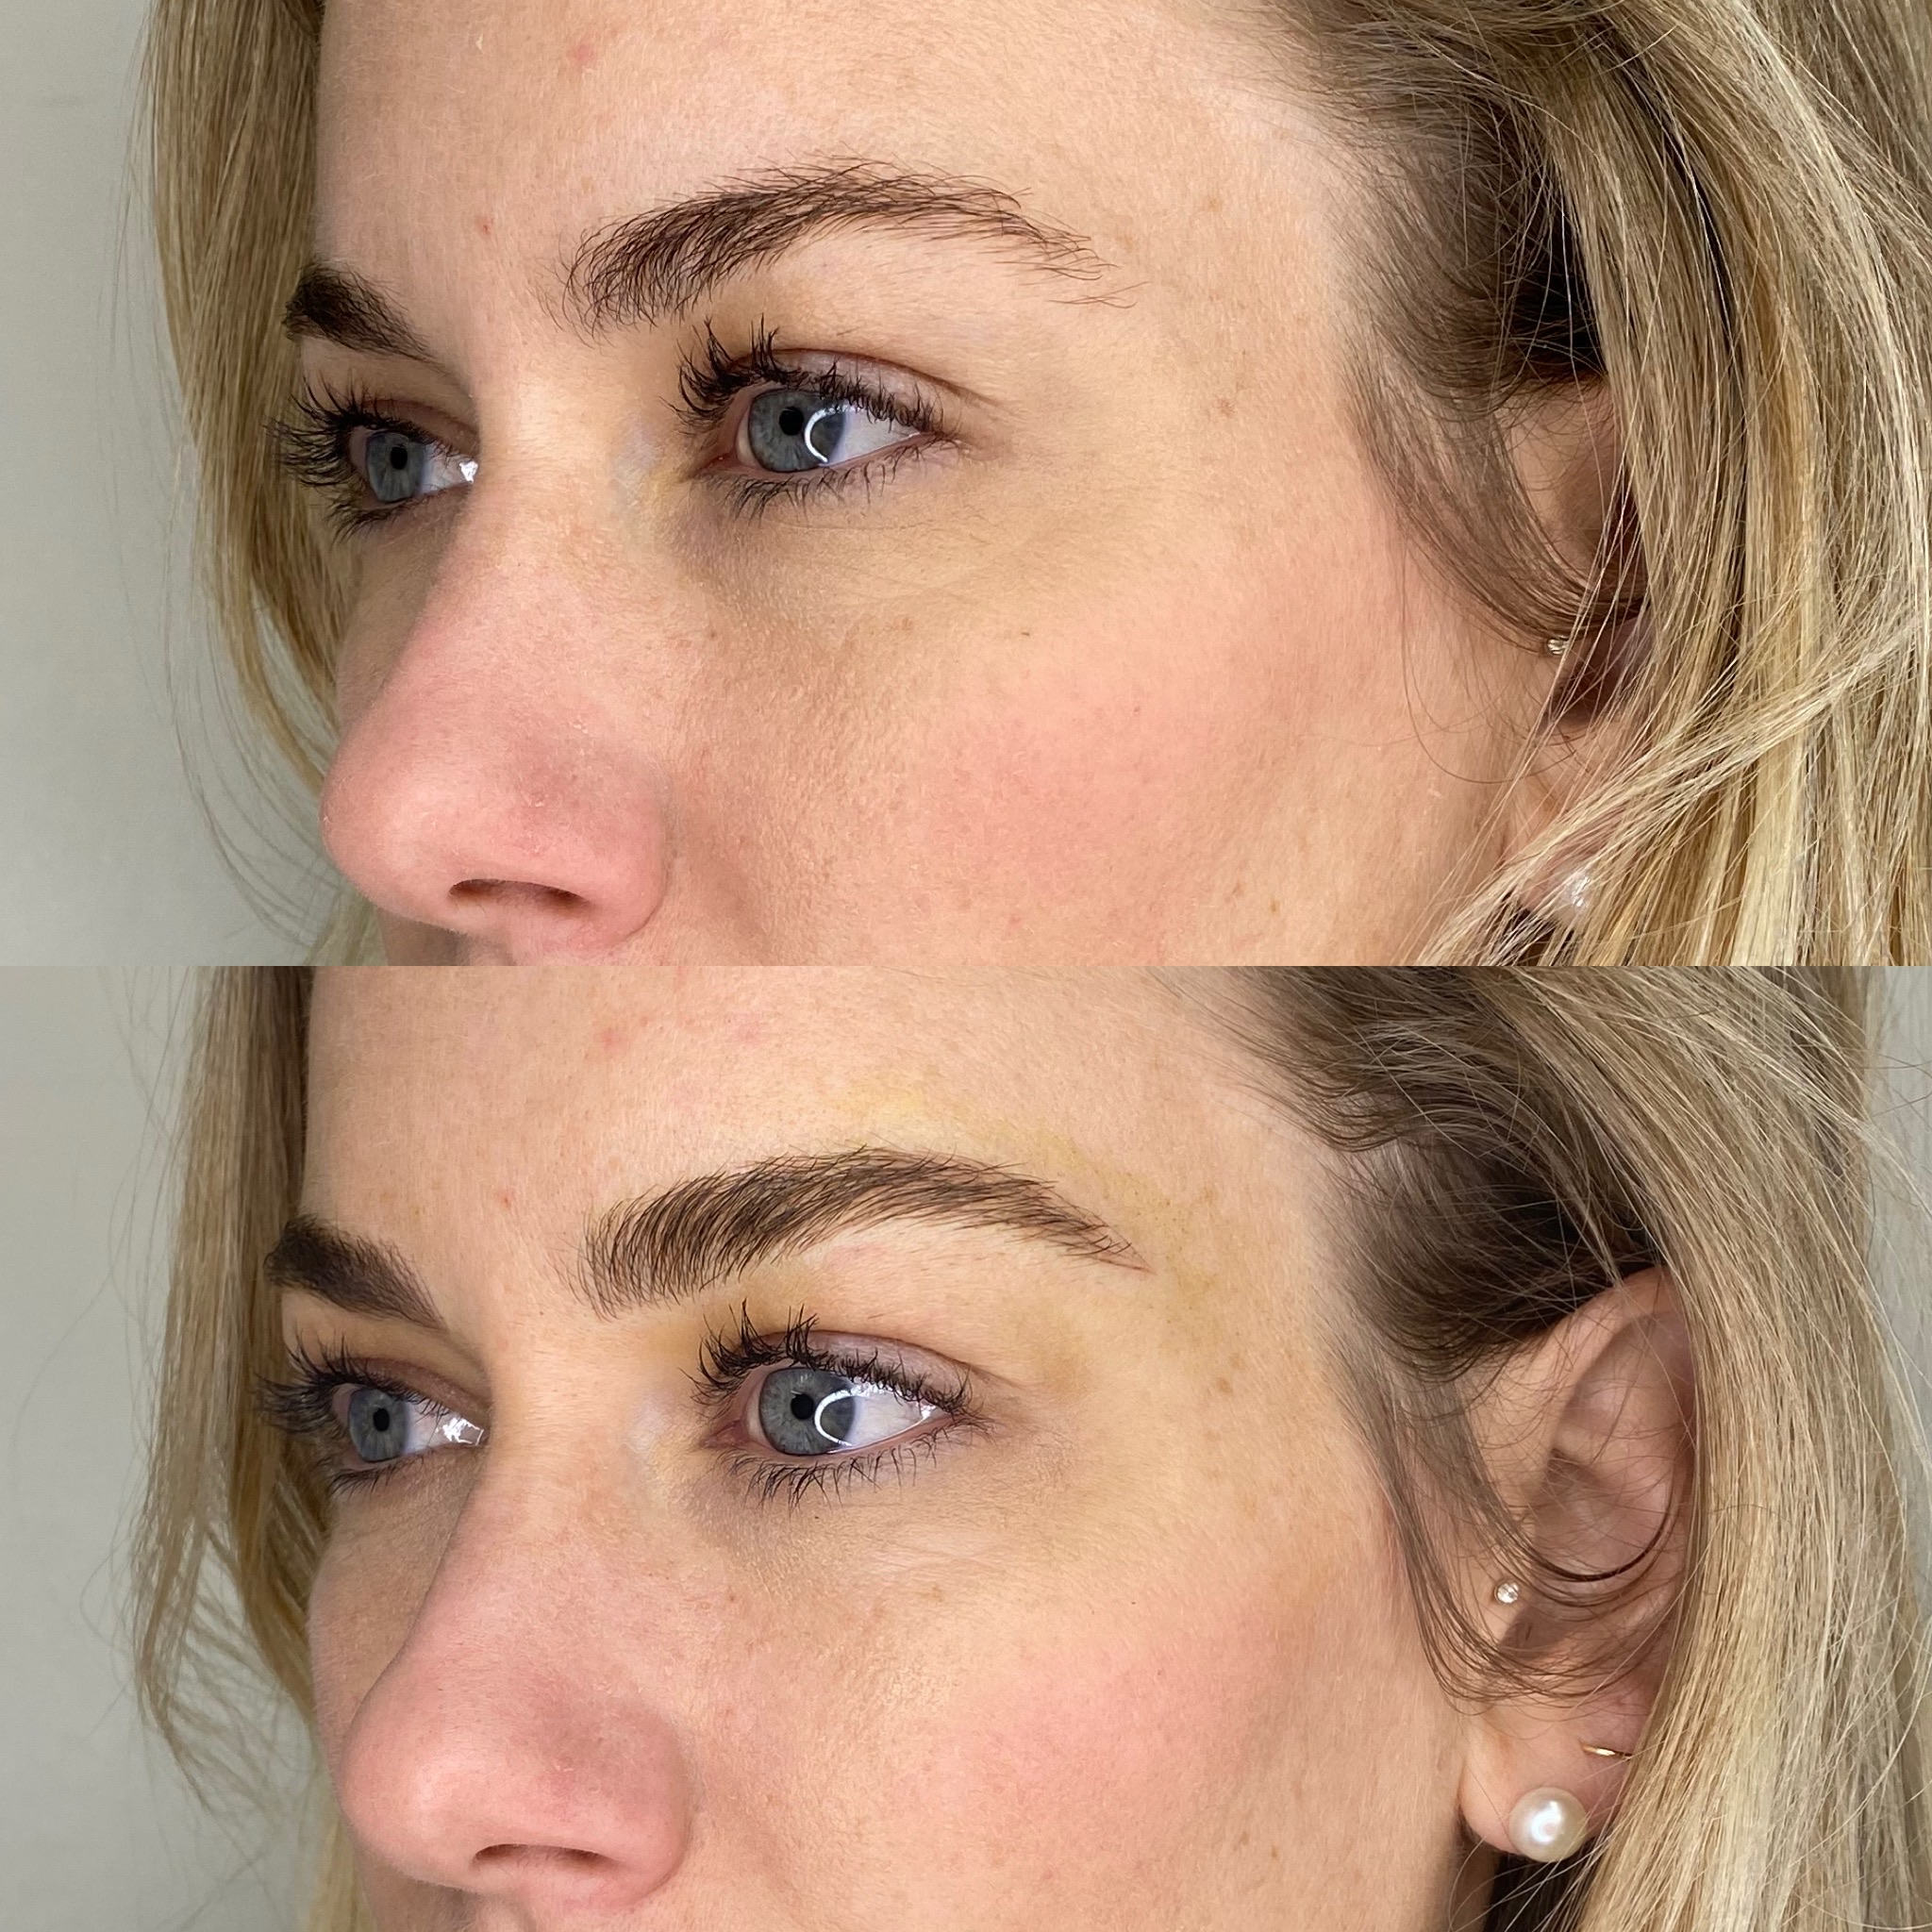 before and after comparison of brow work